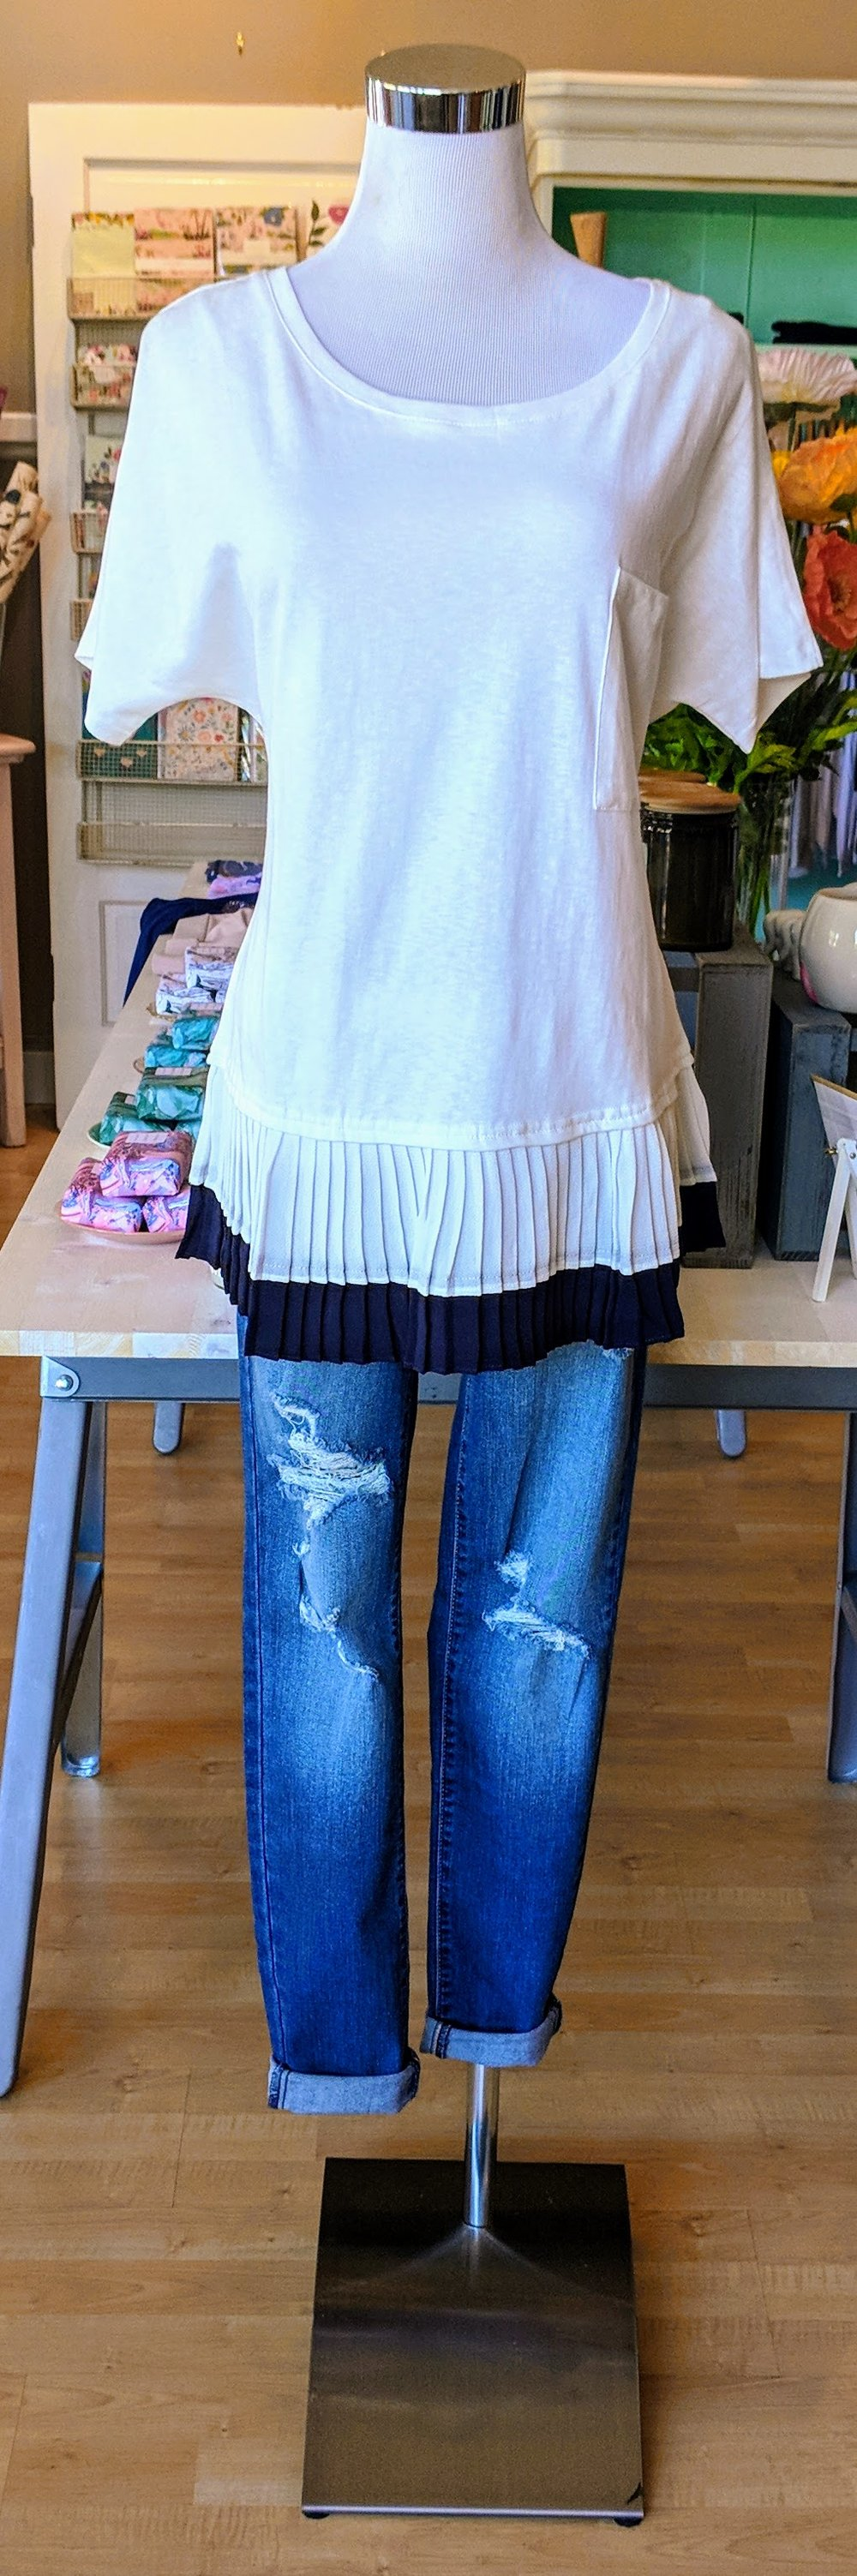 White top with pleated navy bottom